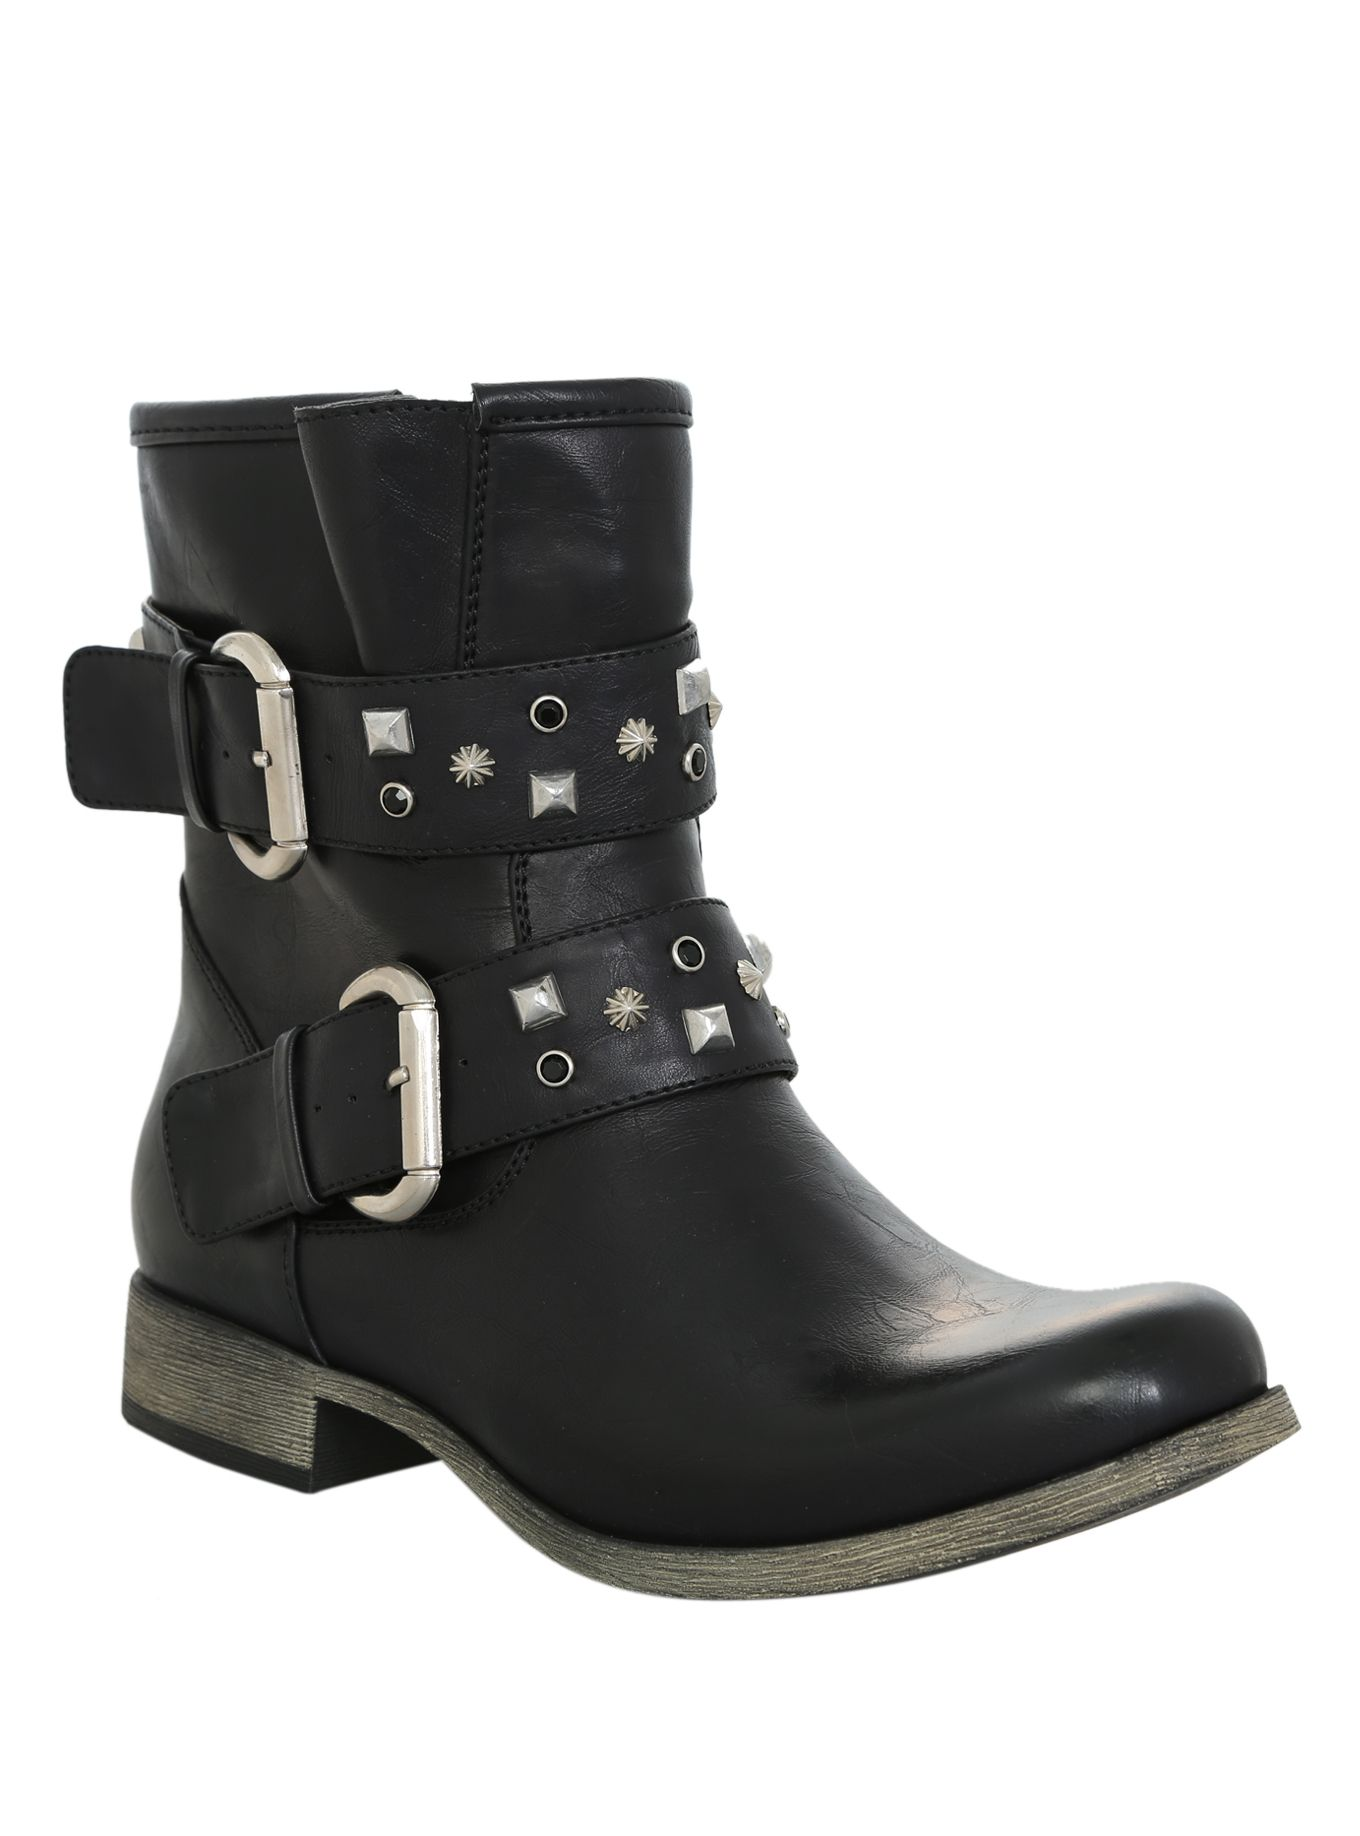 Black+faux+leather+boot+with+silver+tone+stud+and+black